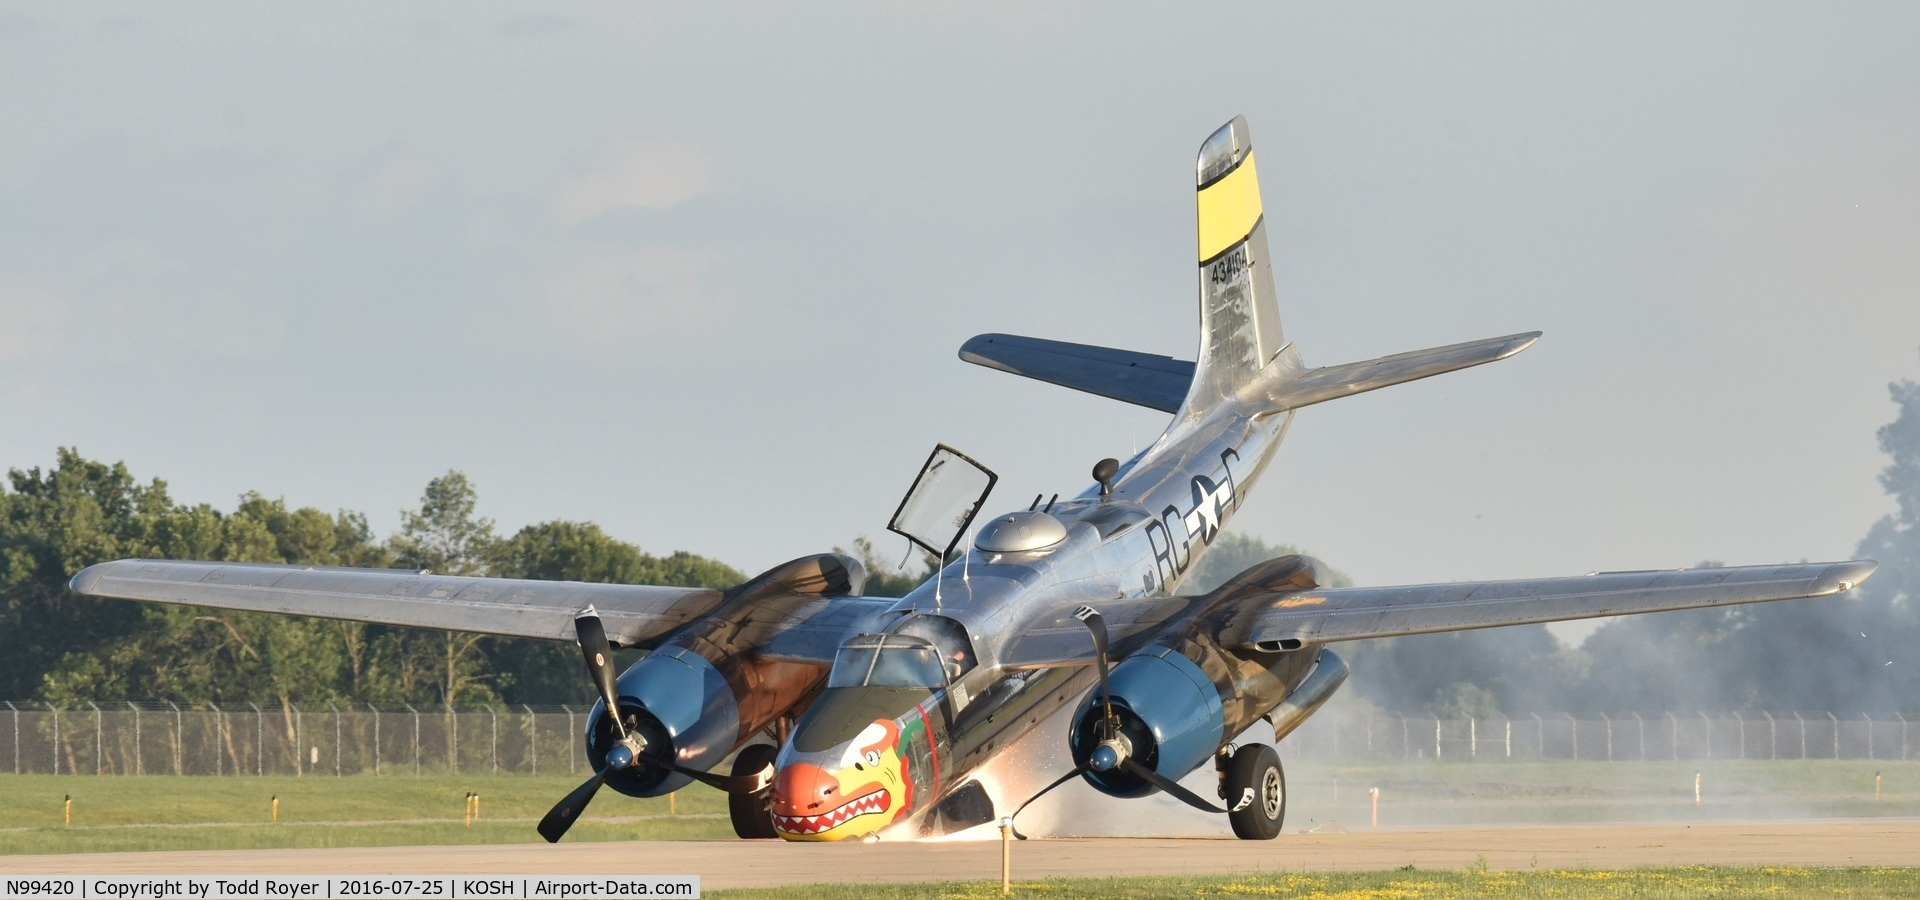 N99420, 1944 Douglas B-26B Invader C/N 27383, Emergency landing at Airventure 2016, know failure of nose gear before touch down, excellent landing, no injuries.